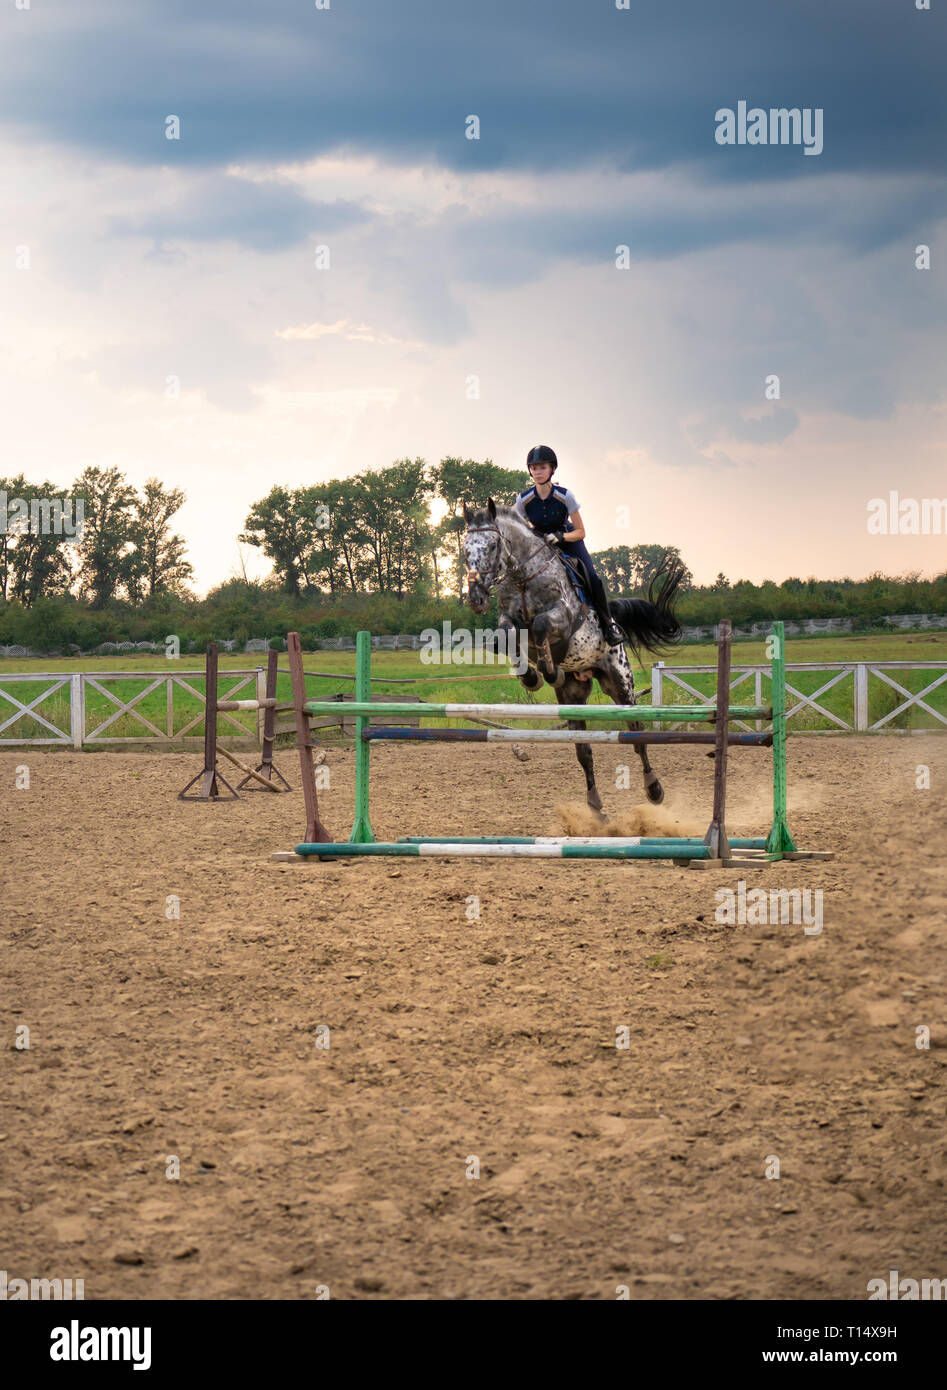 A woman jockey jumps over the barriers on a horse in a jumping competition during sunset. A young girl rider rides a horse riding in the saddle. Stock Photo